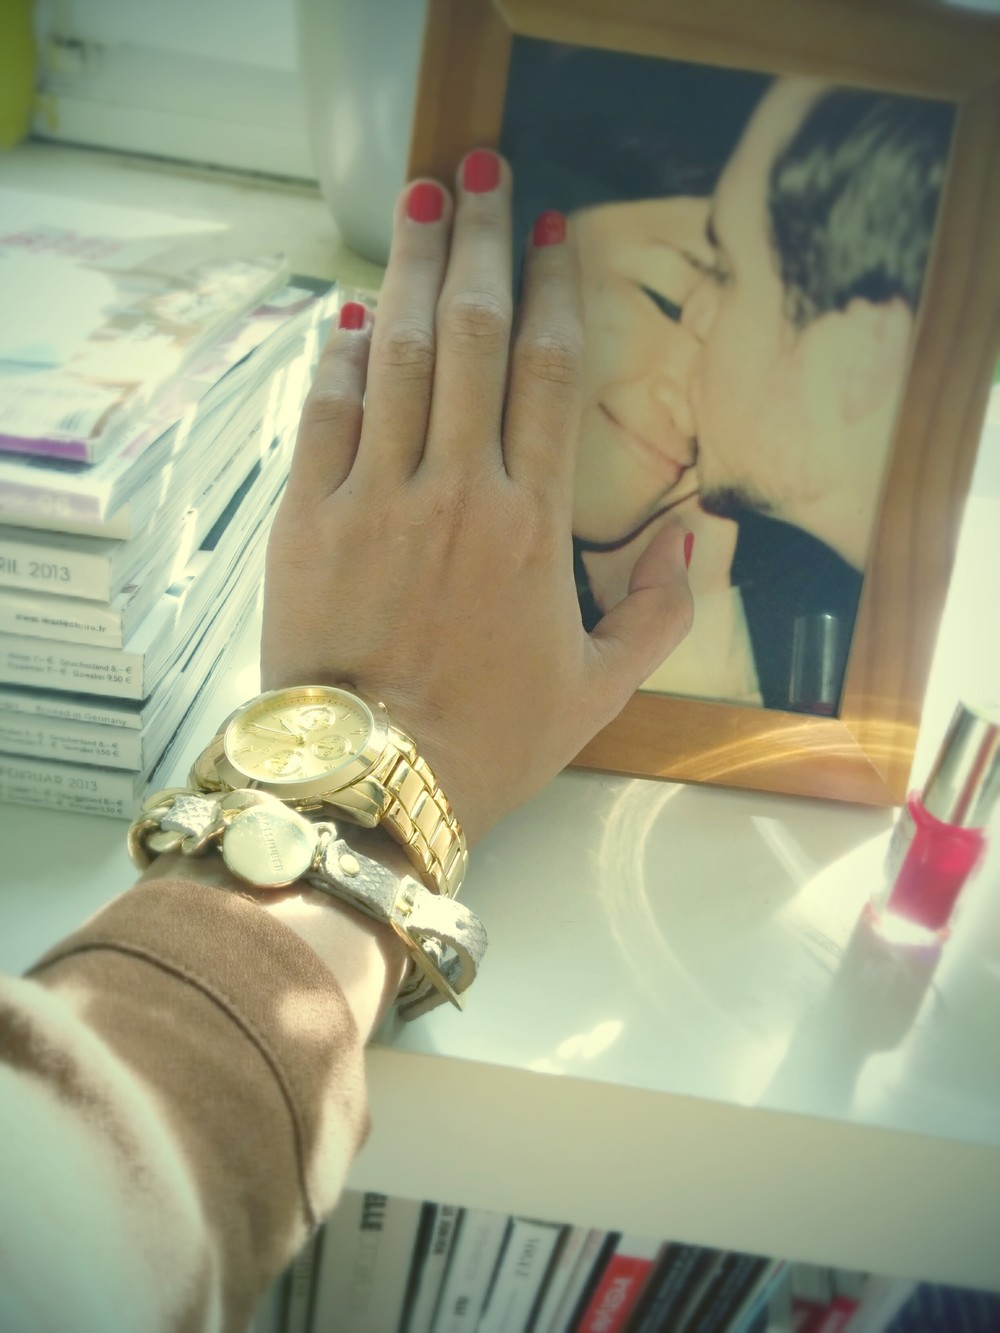 having this photo on the study room. love to see it everyday. oh yep- i am into red nail polish again.